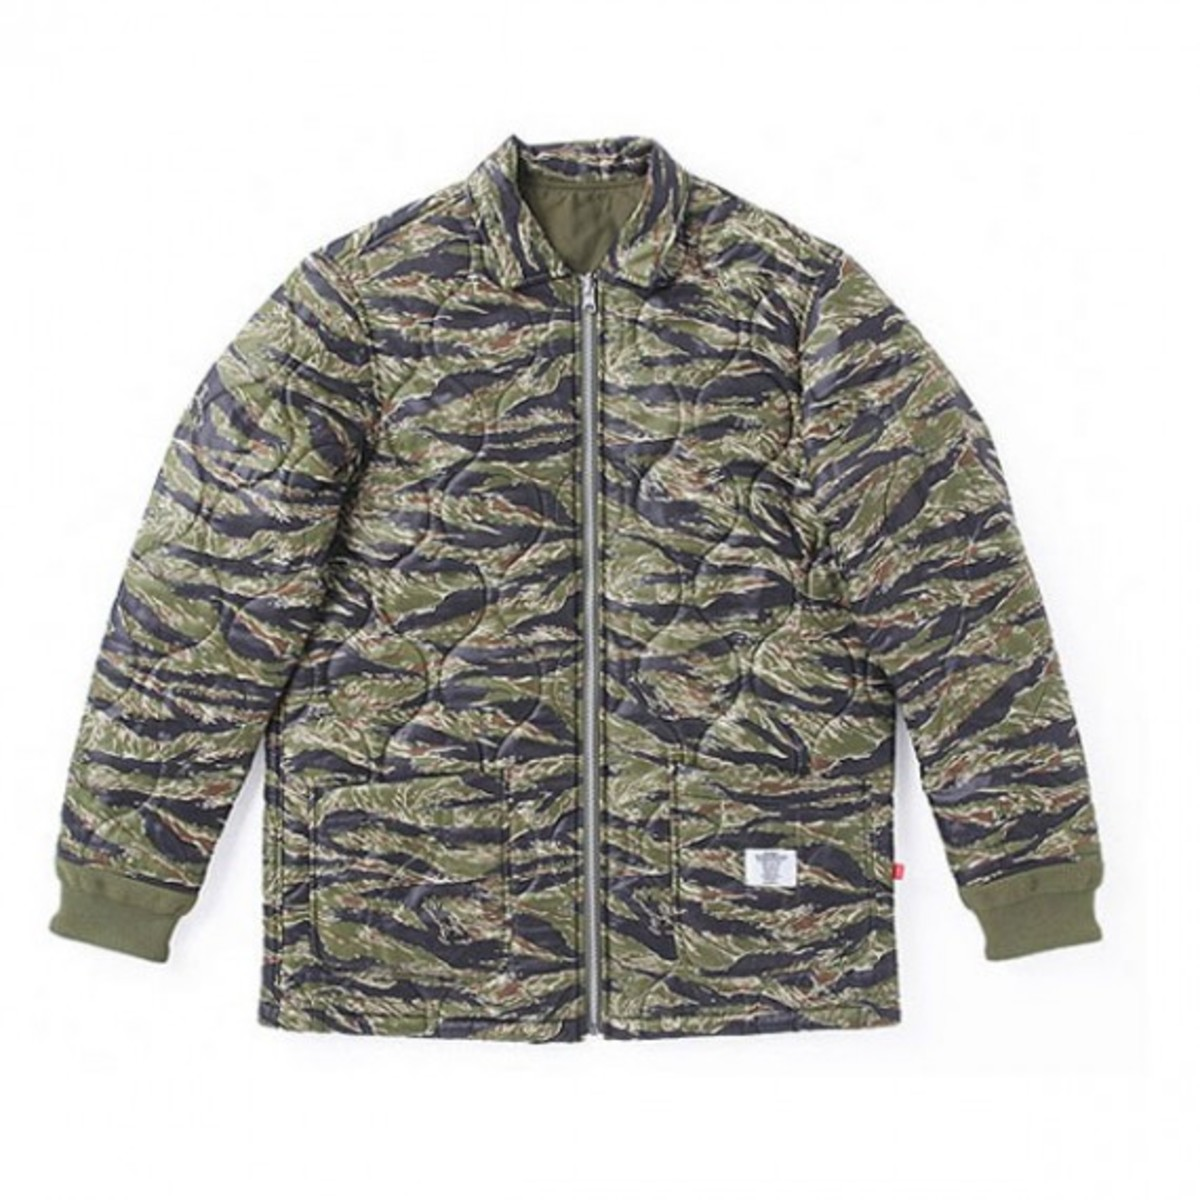 joey-quilting-jacket-camo-01